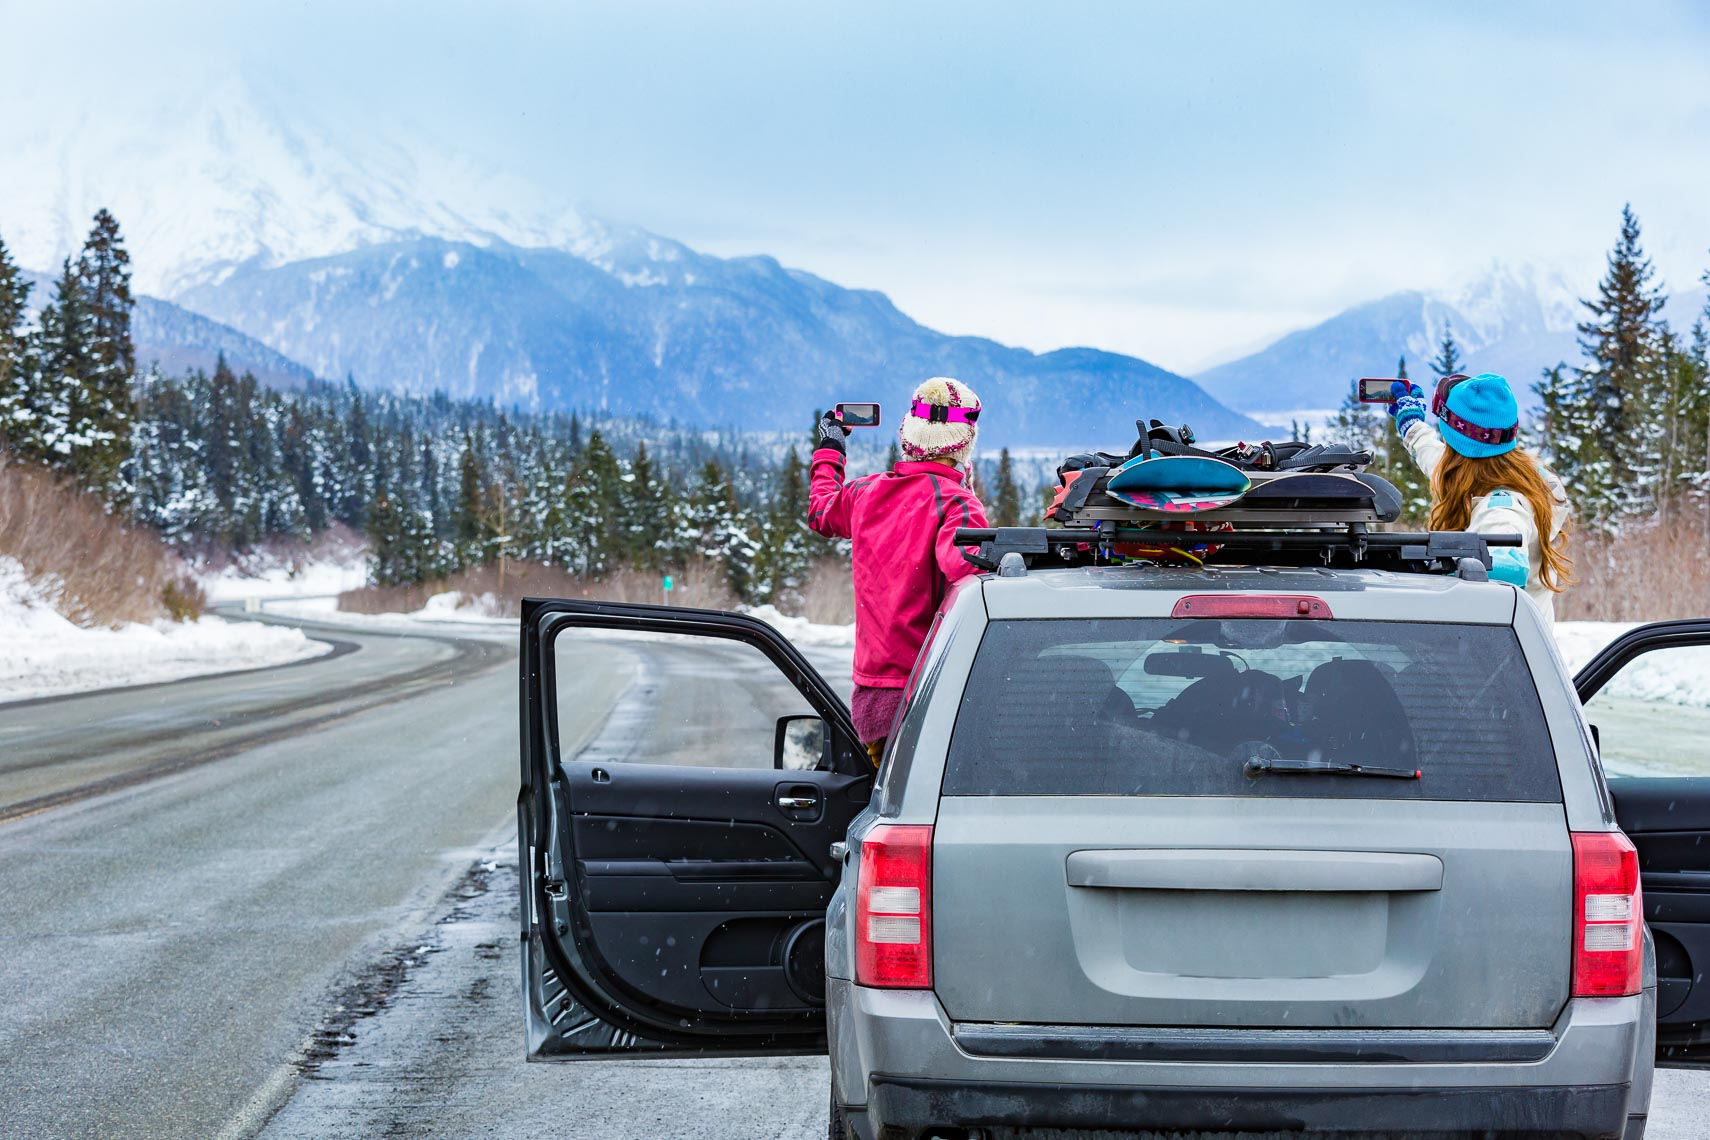 Alaska Winter Travel Friend Road Trip | Michael DeYoung